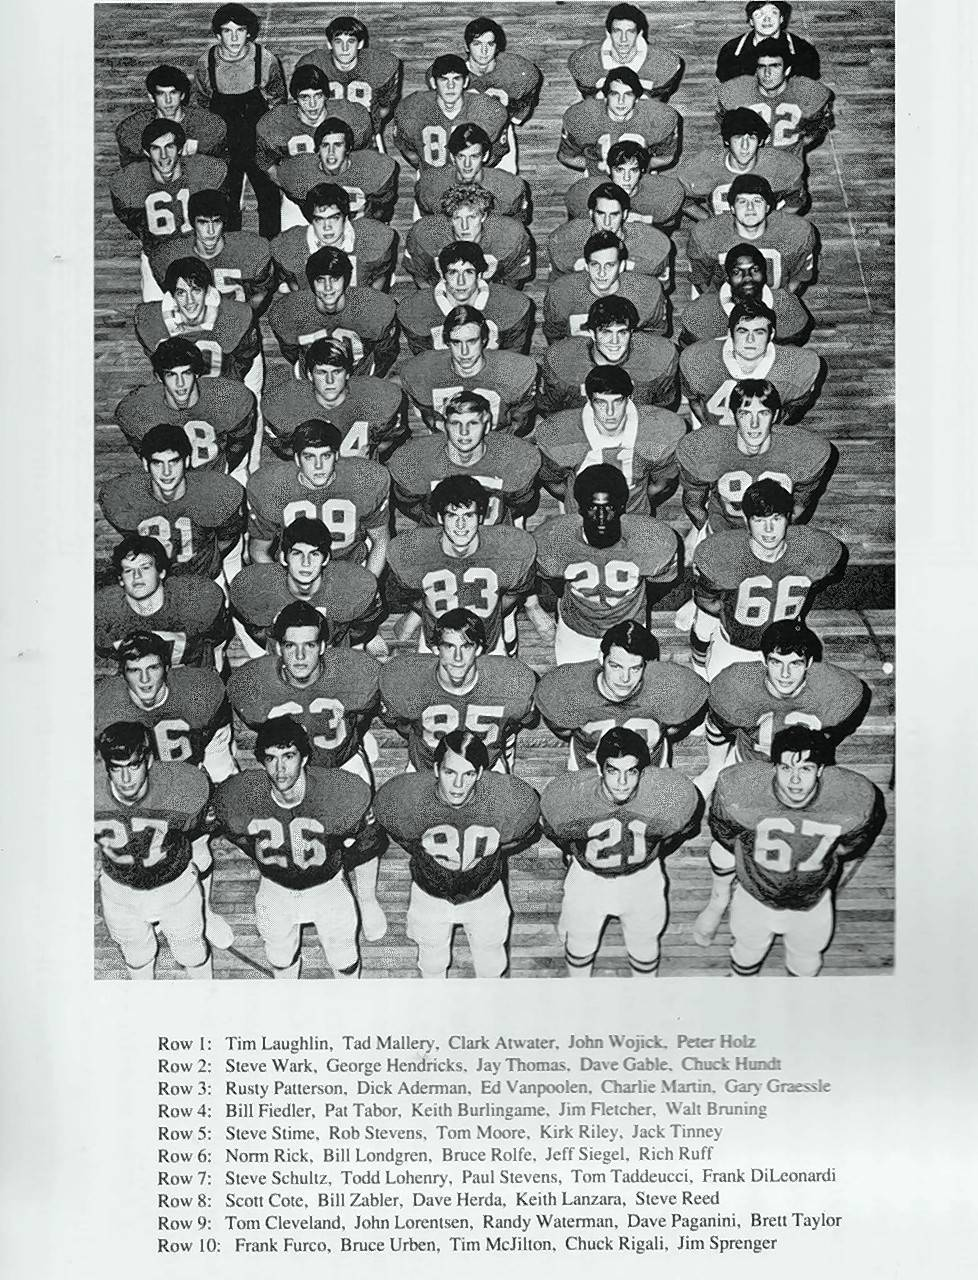 The 1974 Wheaton North football team photo.